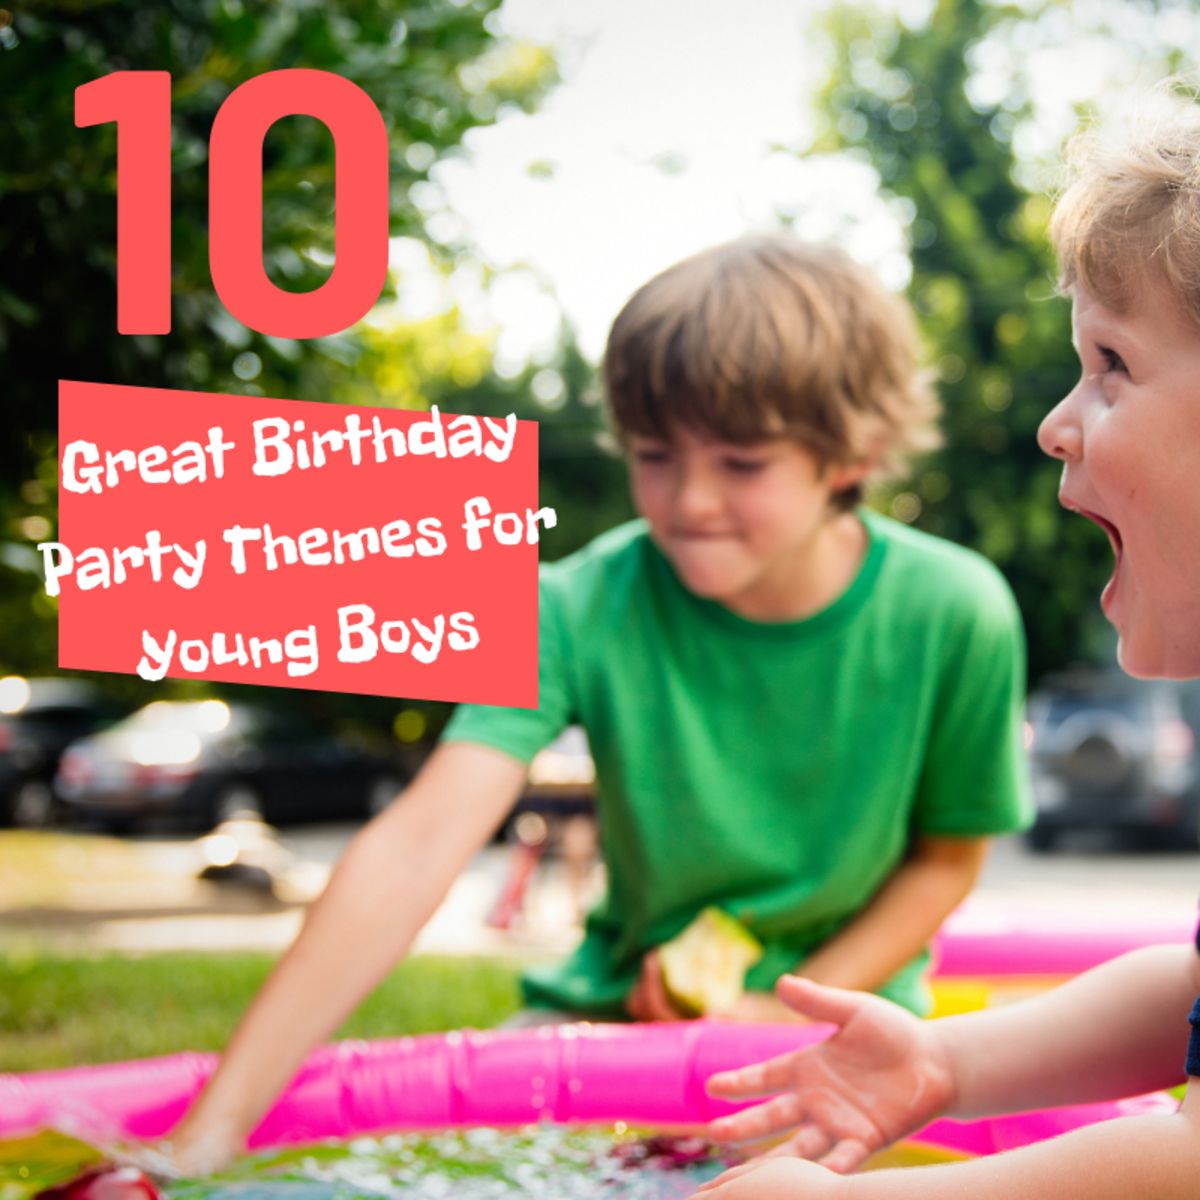 10 Great Birthday Party Themes for Young Boys